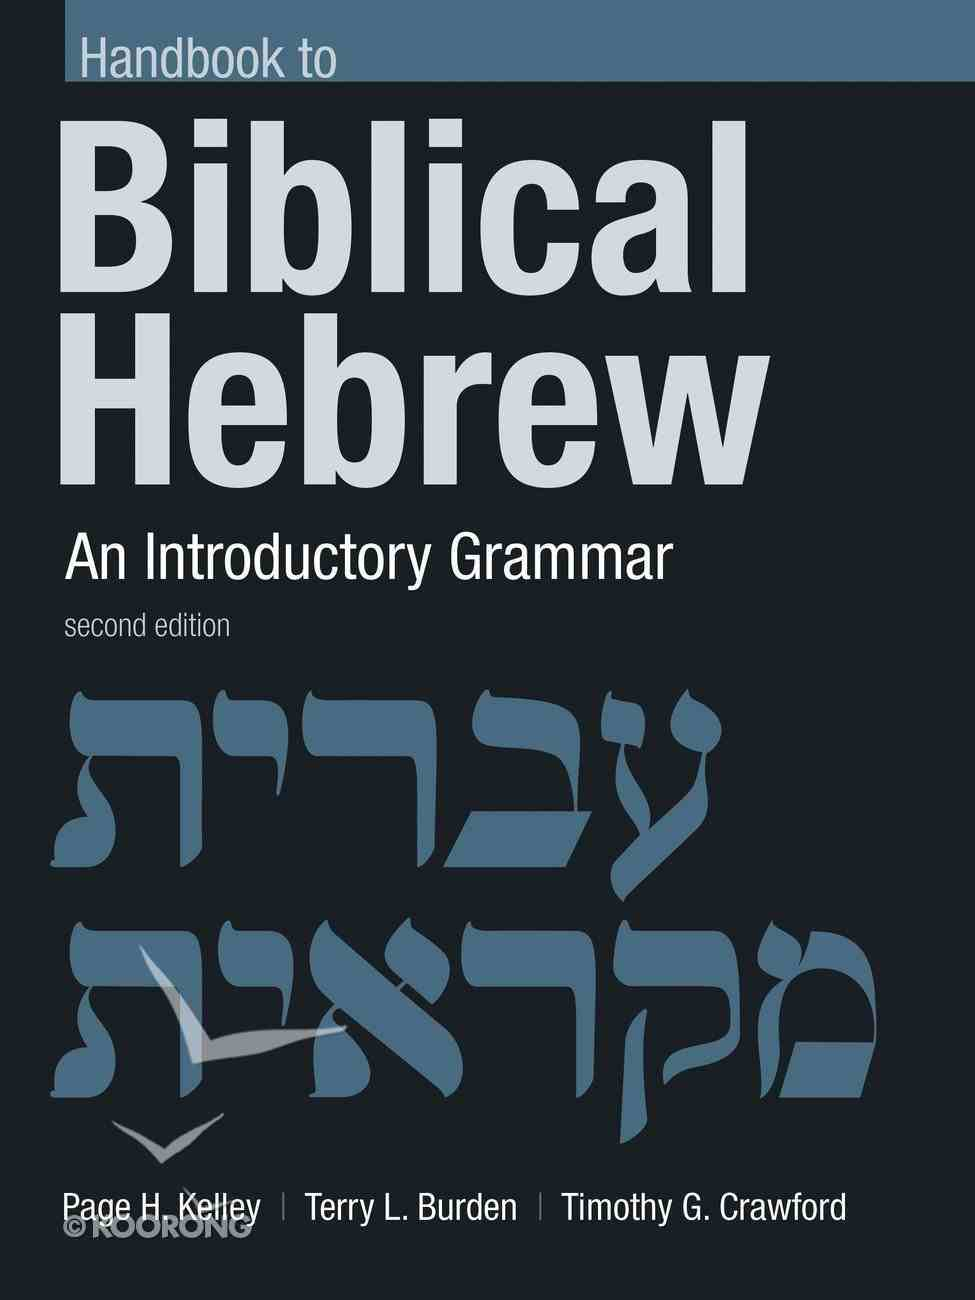 Handbook to Biblical Hebrew: An Introductory Grammar (2nd Edition) Paperback